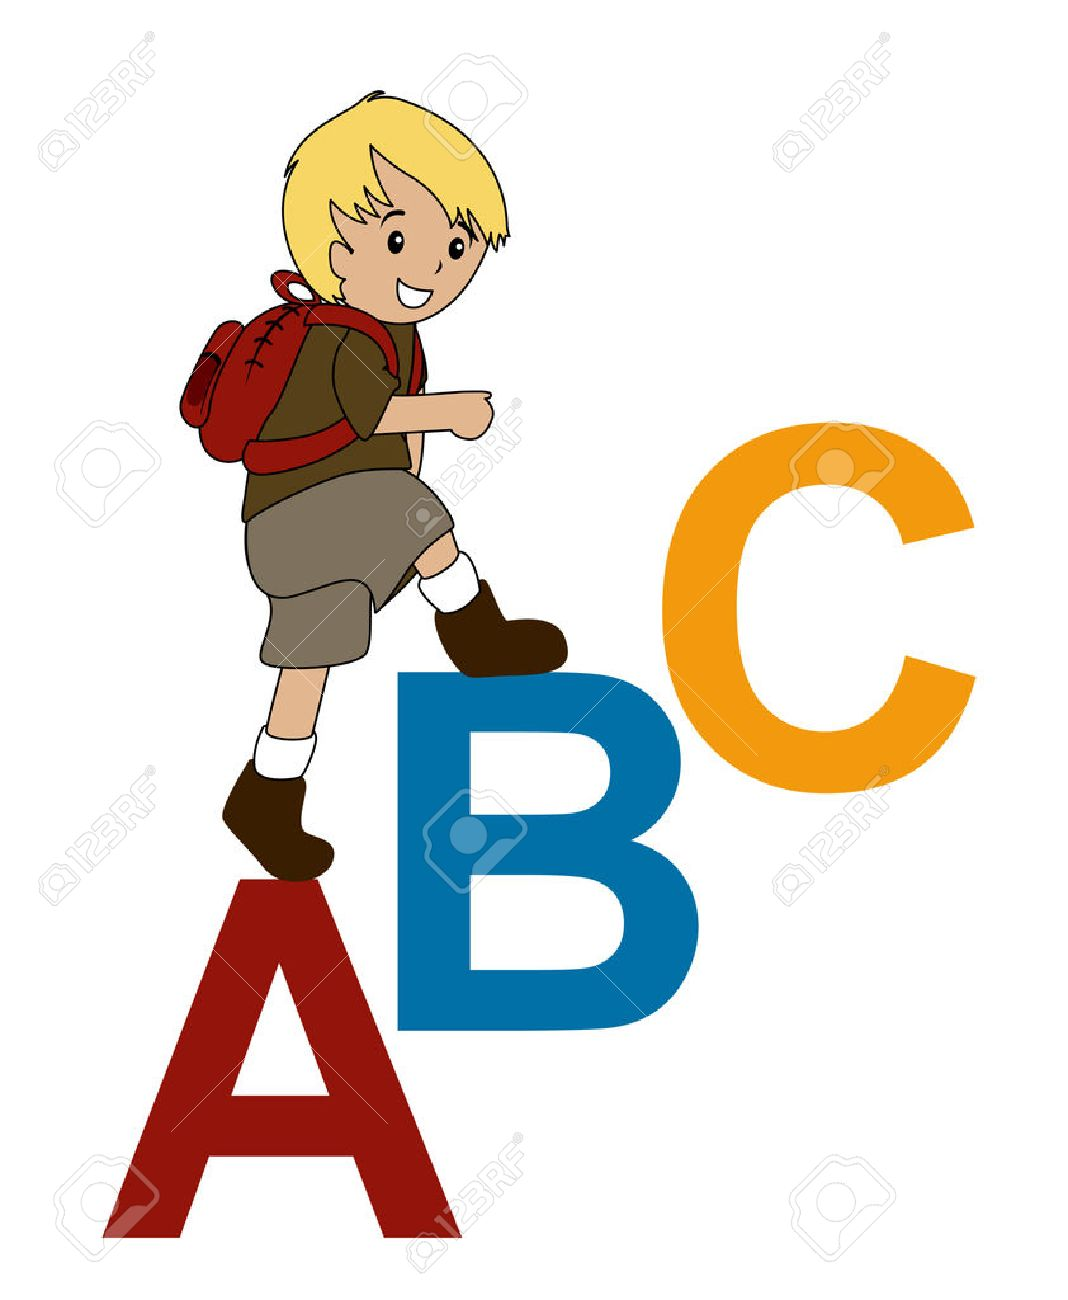 Illustration of a Boy walking up on ABC Stock Vector - 1830393